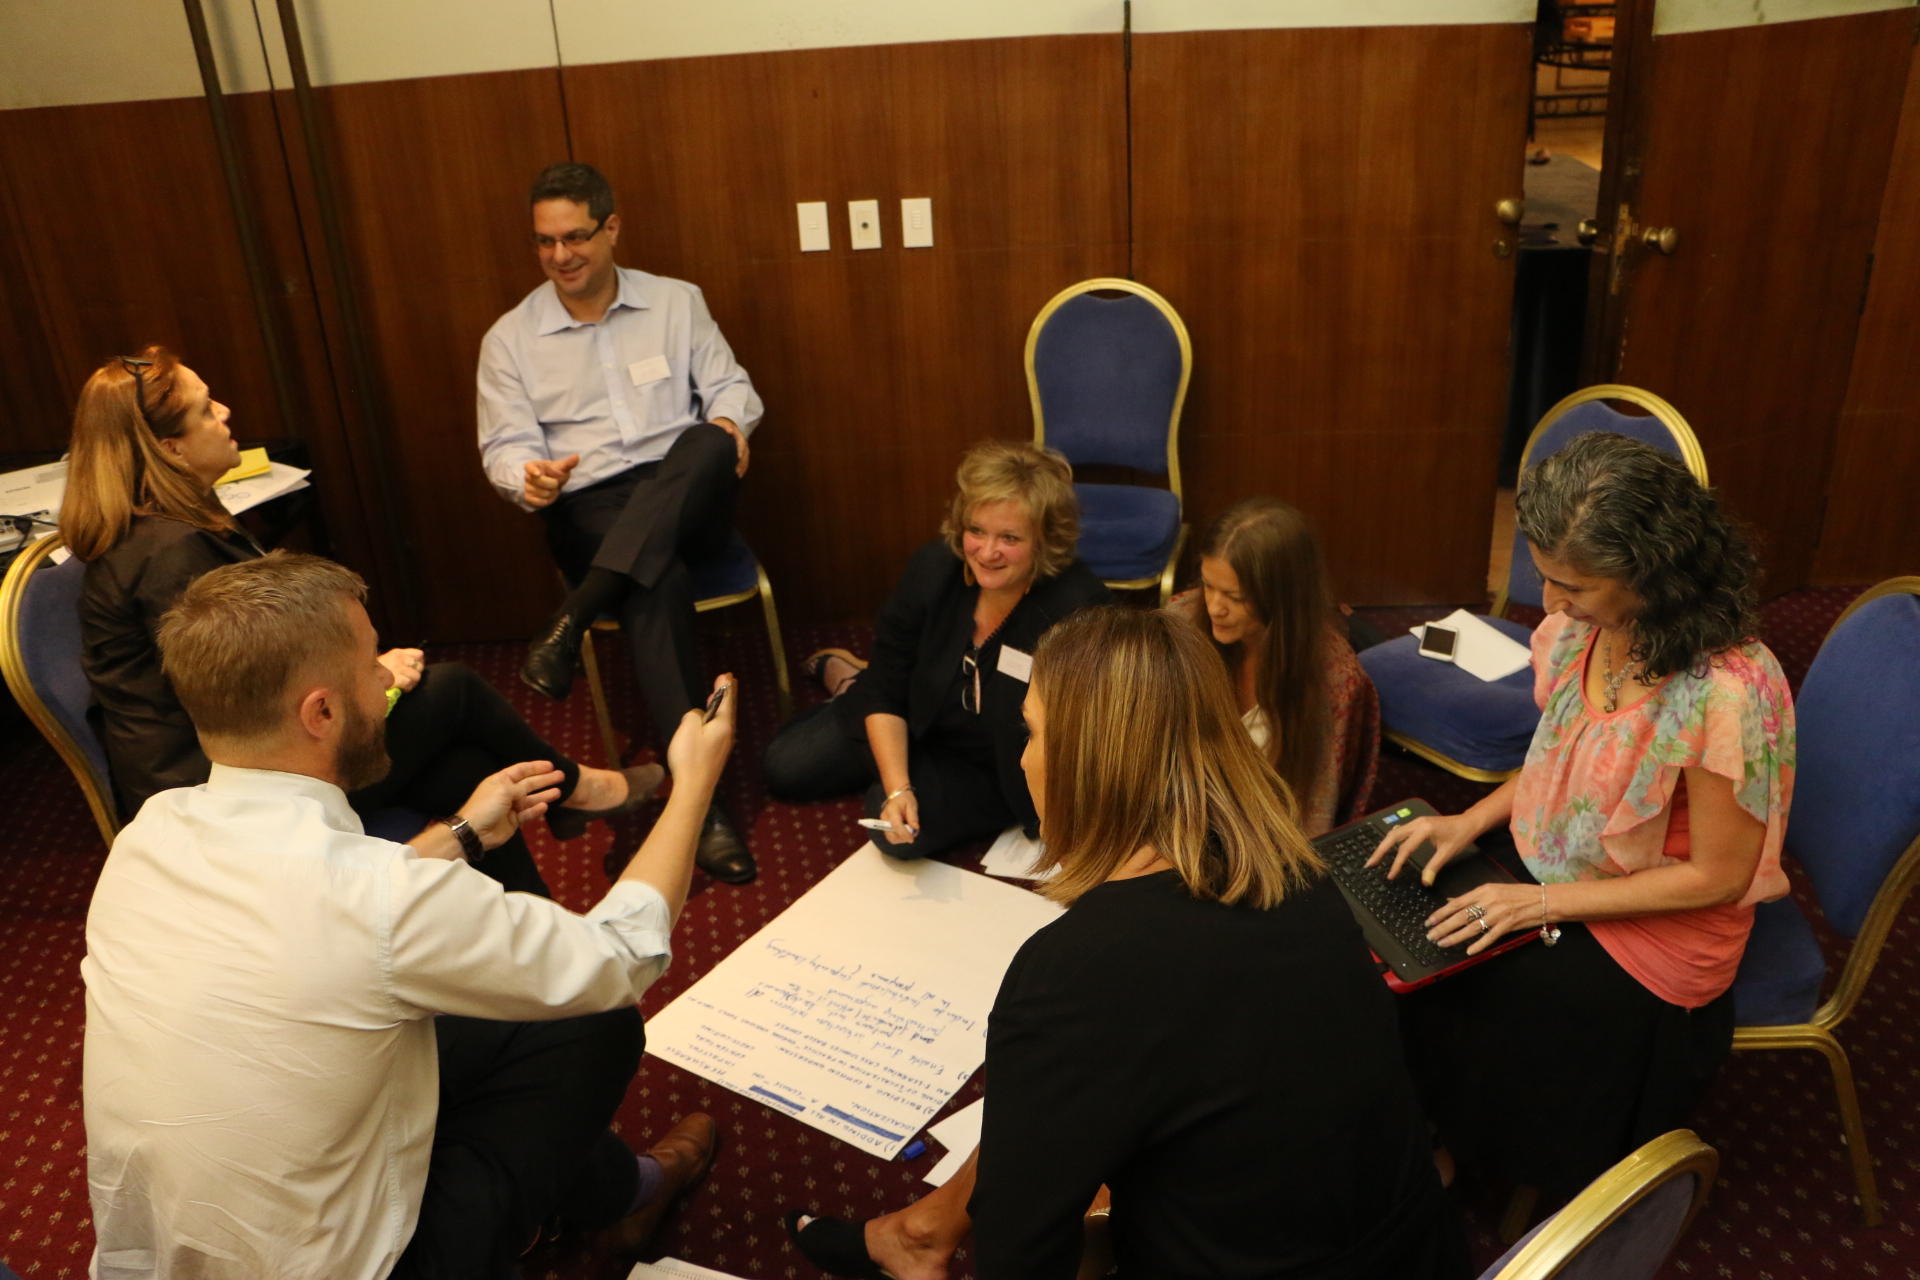 Middle East Regional Conference on Localisation - Day 2 - Group Discussions 3